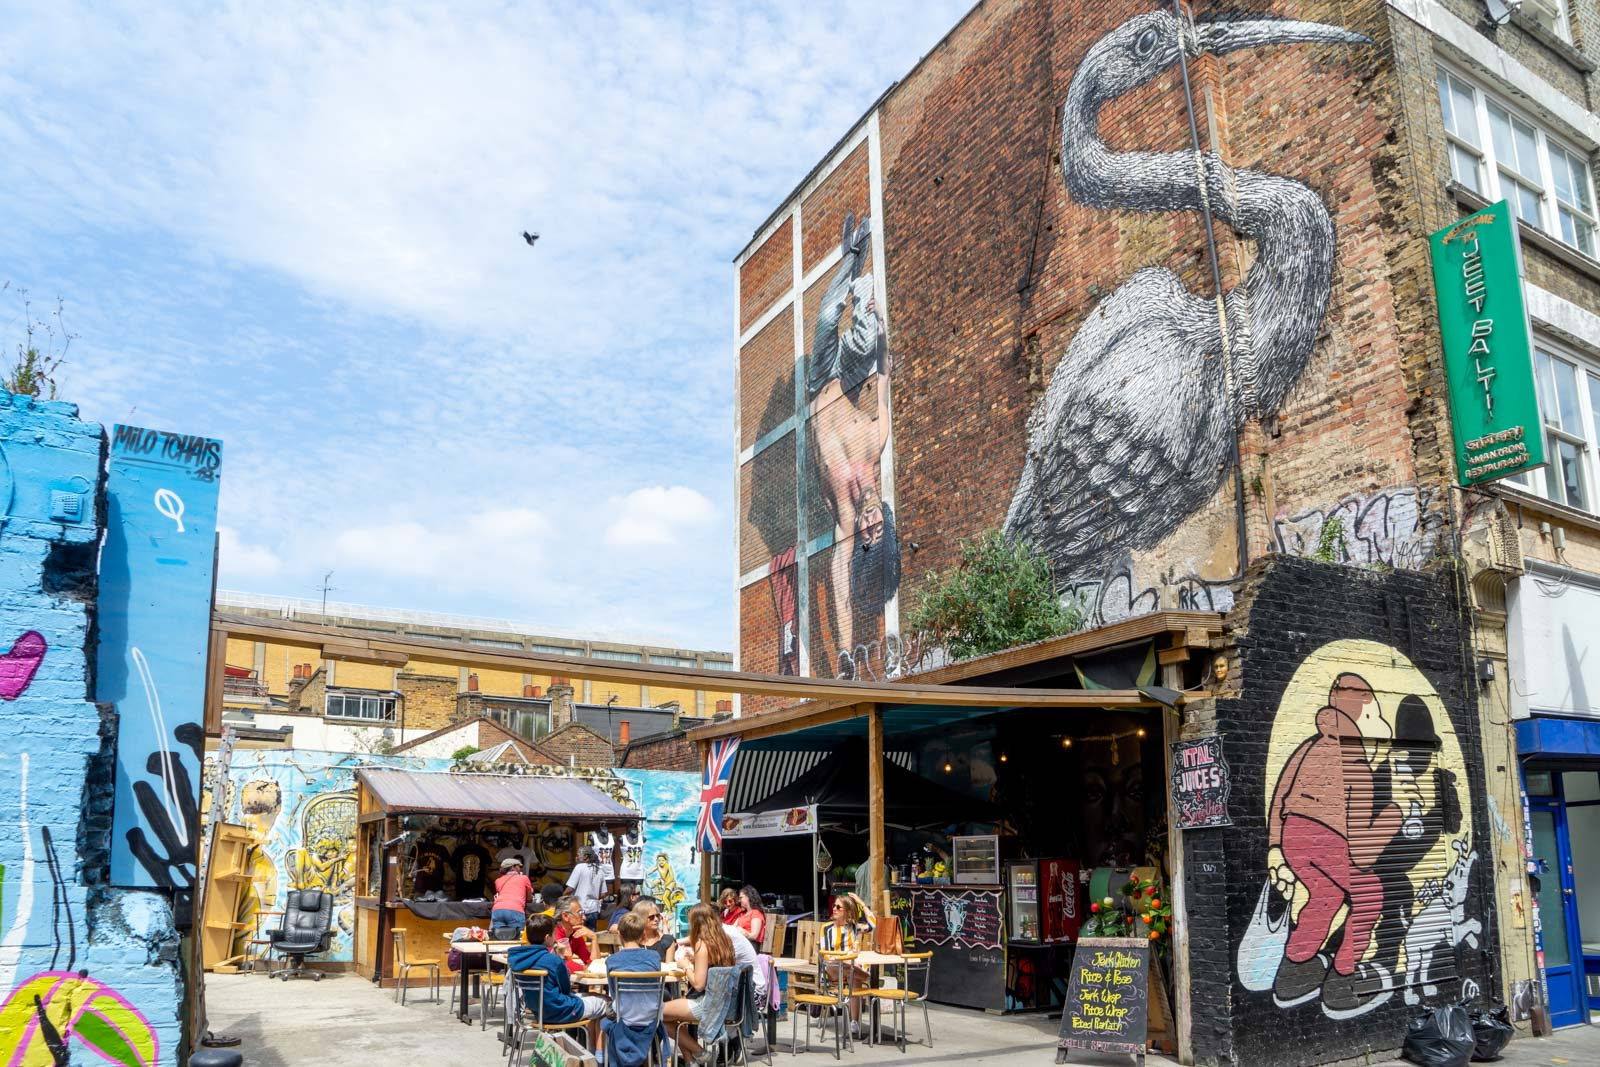 Things to do in Whitechapel, London